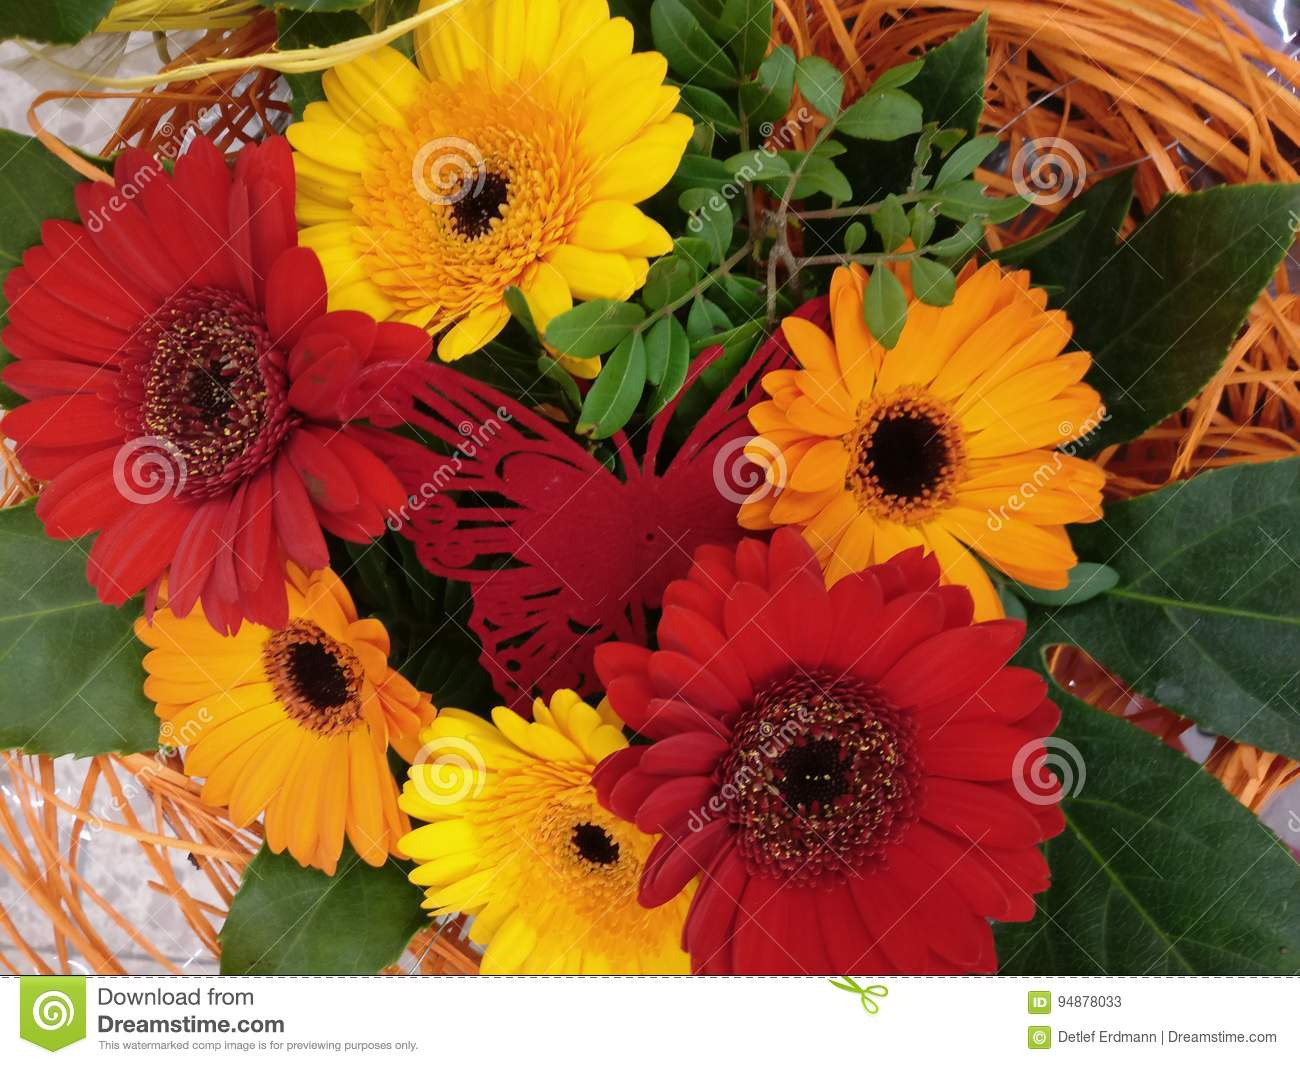 Bouquets of coloured flowers stock image image of different download bouquets of coloured flowers stock image image of different colorful 94878033 izmirmasajfo